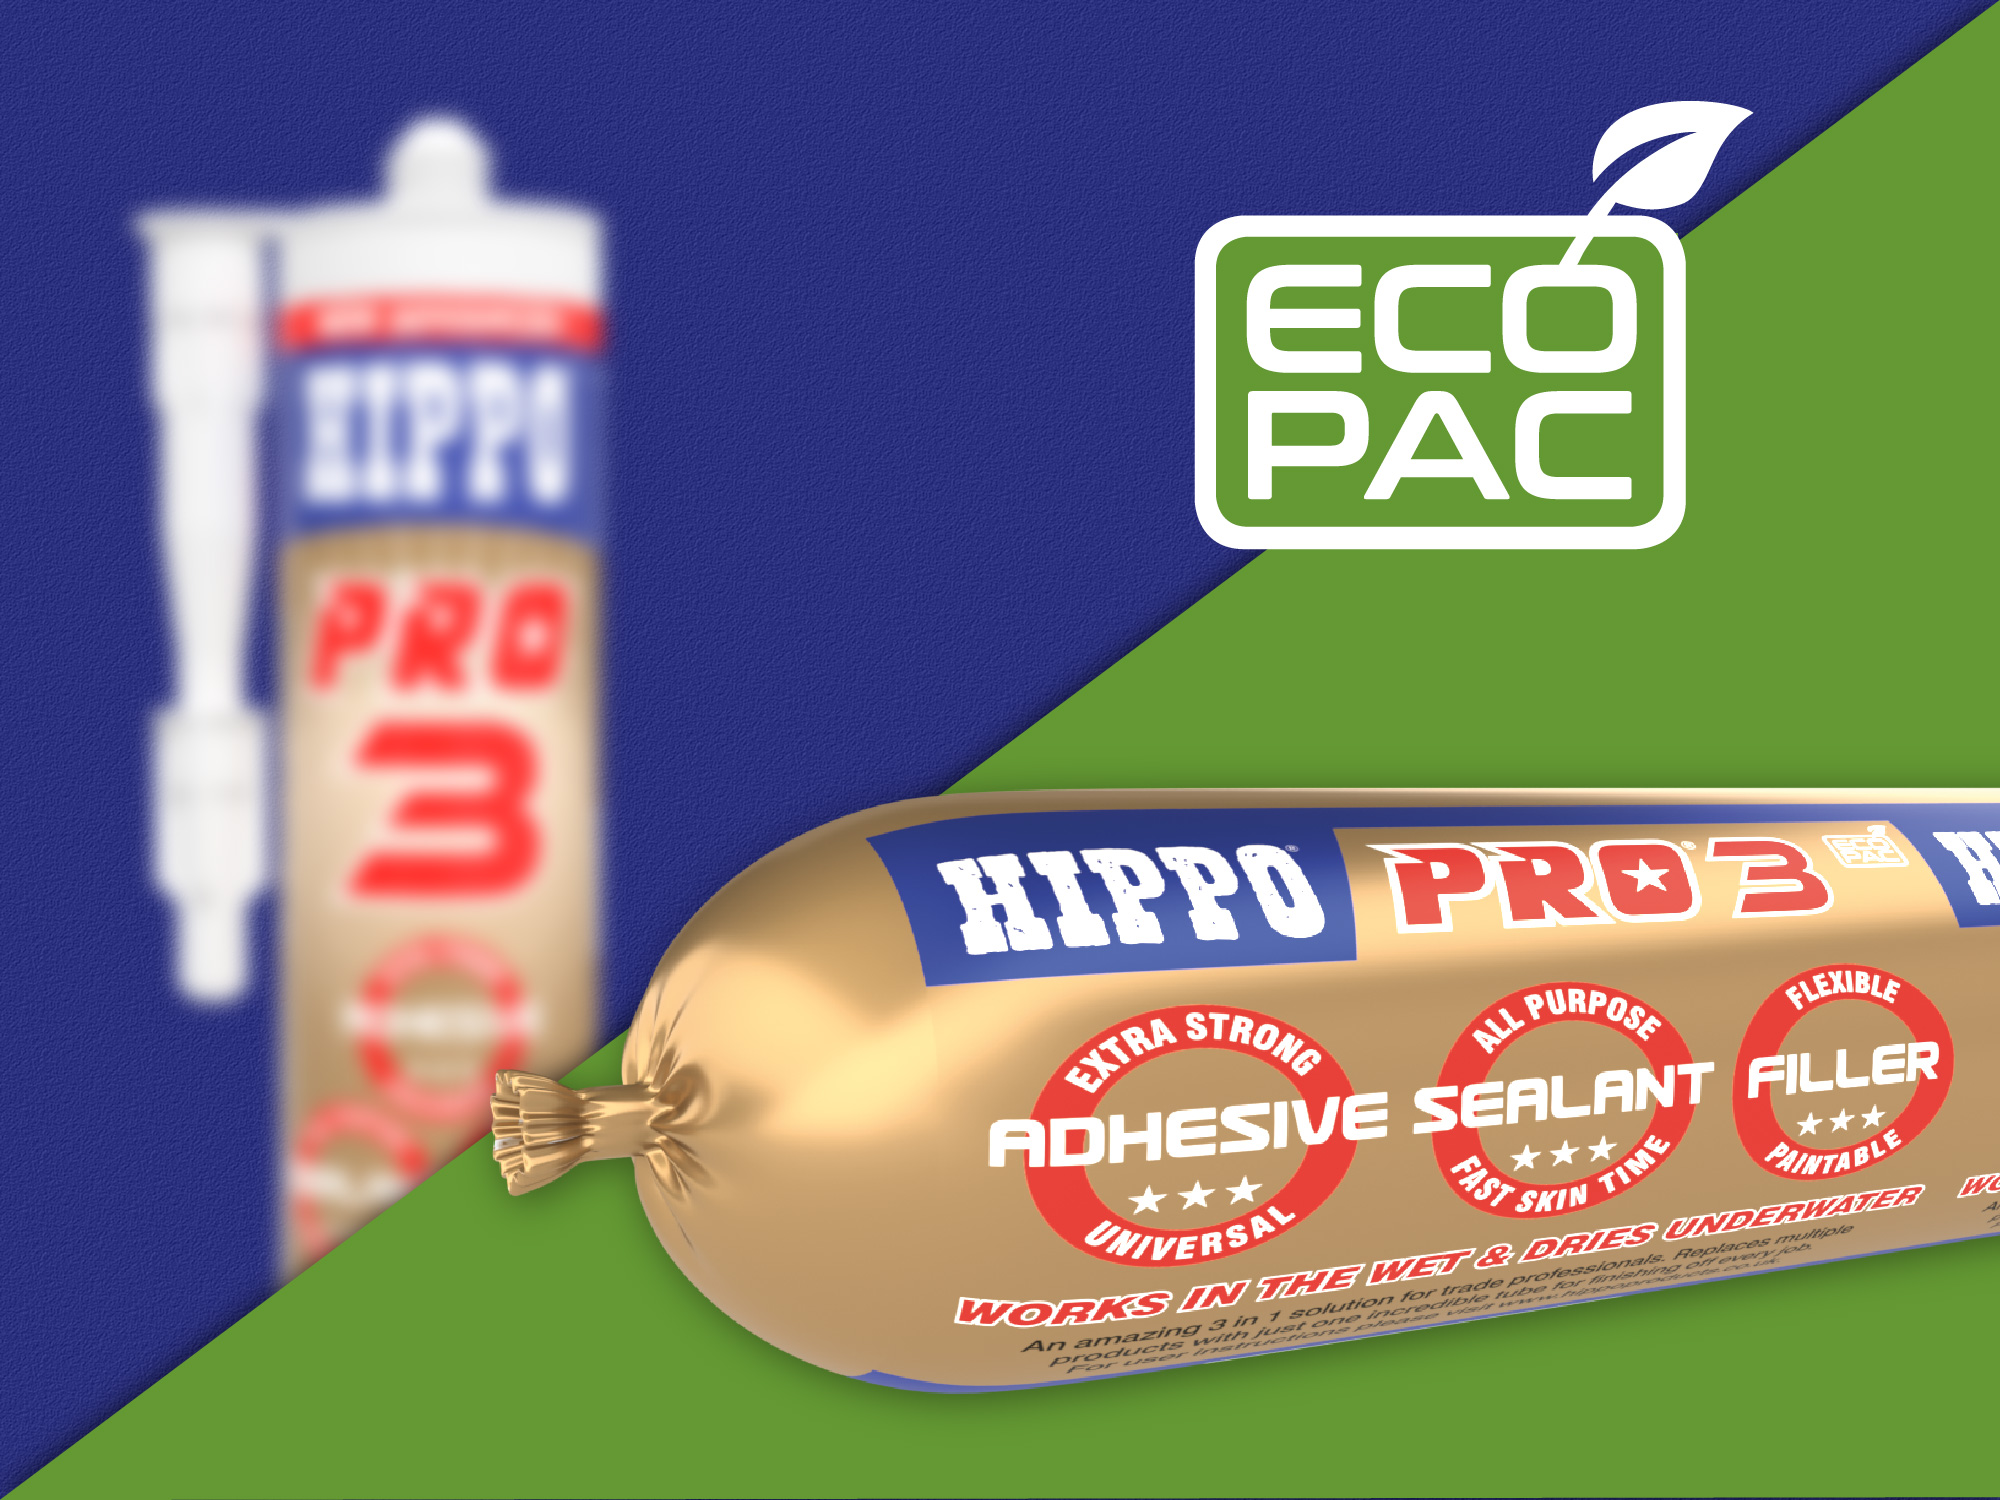 New ECO-PAC - Tackling Waste Plastic